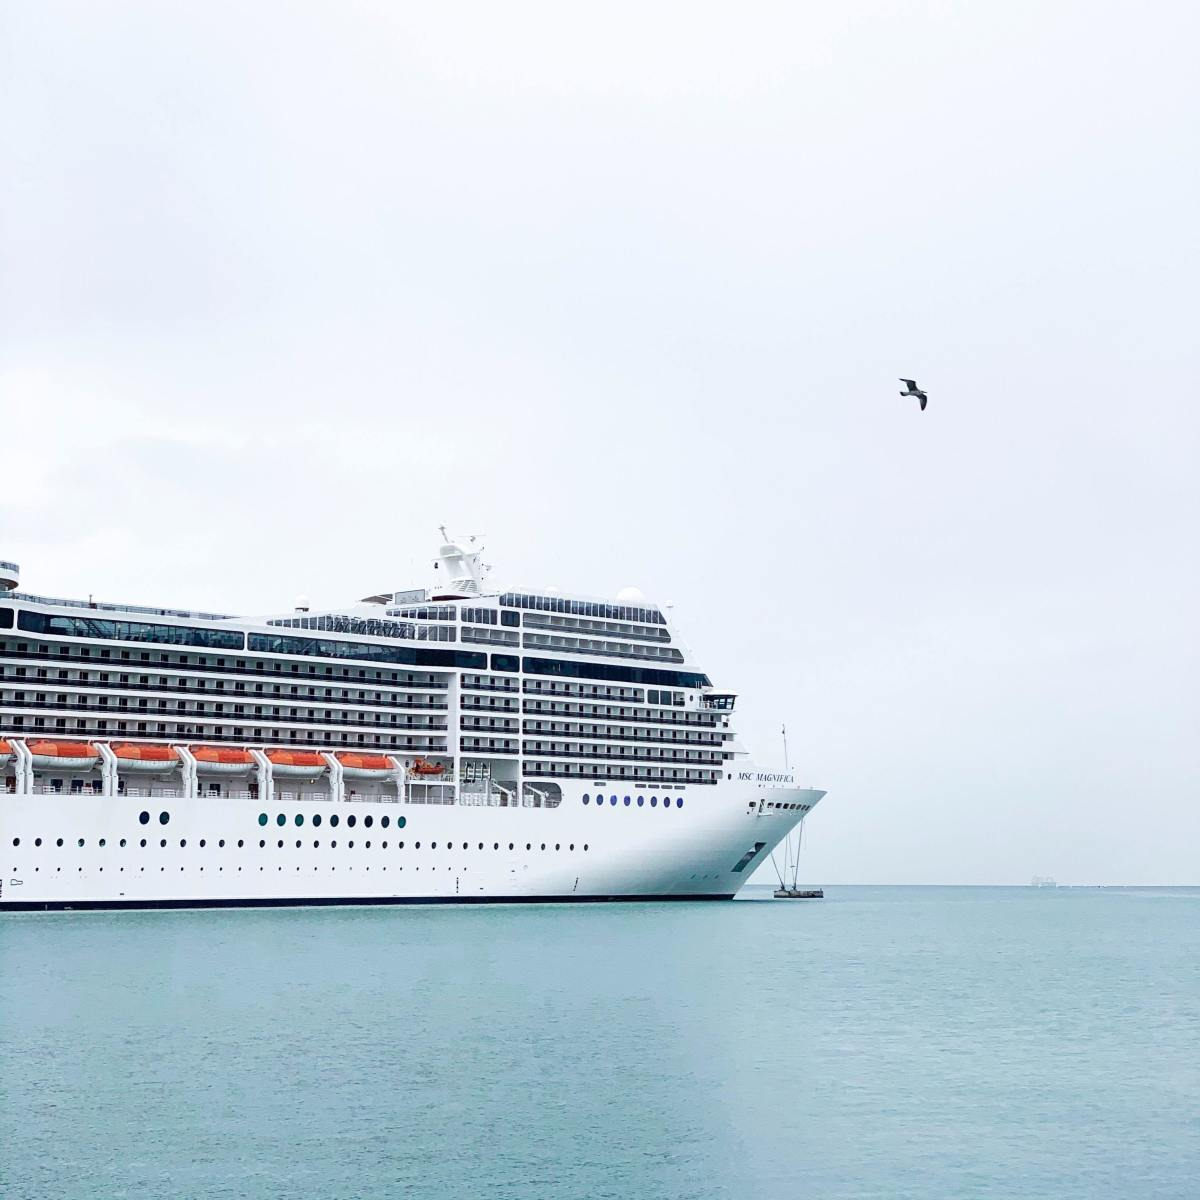 Cruises aren't all sunshine and mimosas. Here are what I consider the top 10 cons of cruising.